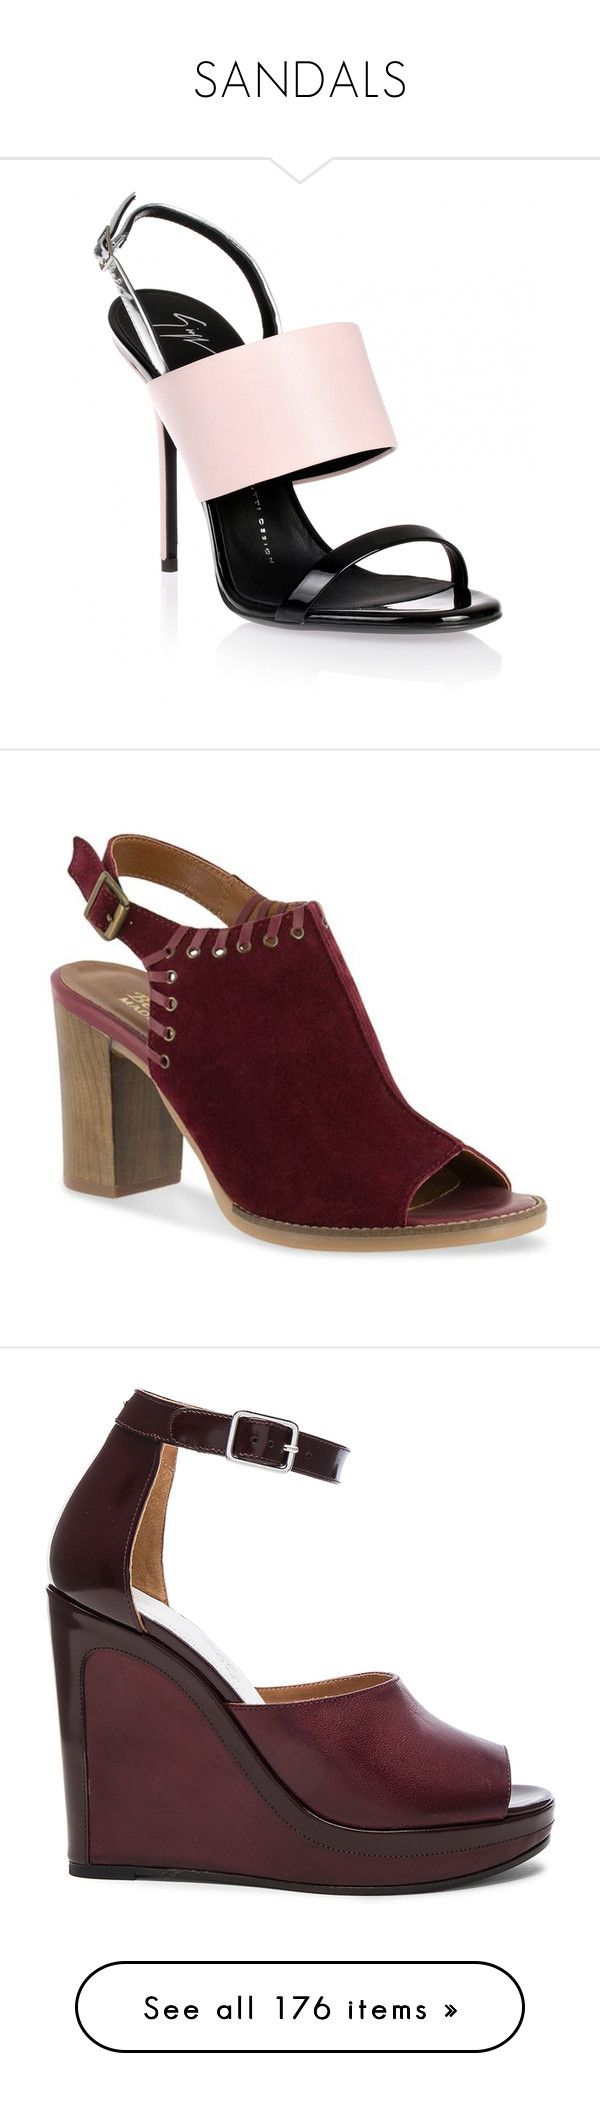 """""""SANDALS"""" by noconfessions ❤ liked on Polyvore featuring shoes, sandals, heels, pink, heeled sandals, strappy stiletto sandals, stiletto sandals, strappy sandals, strappy heeled sandals and burgundy"""